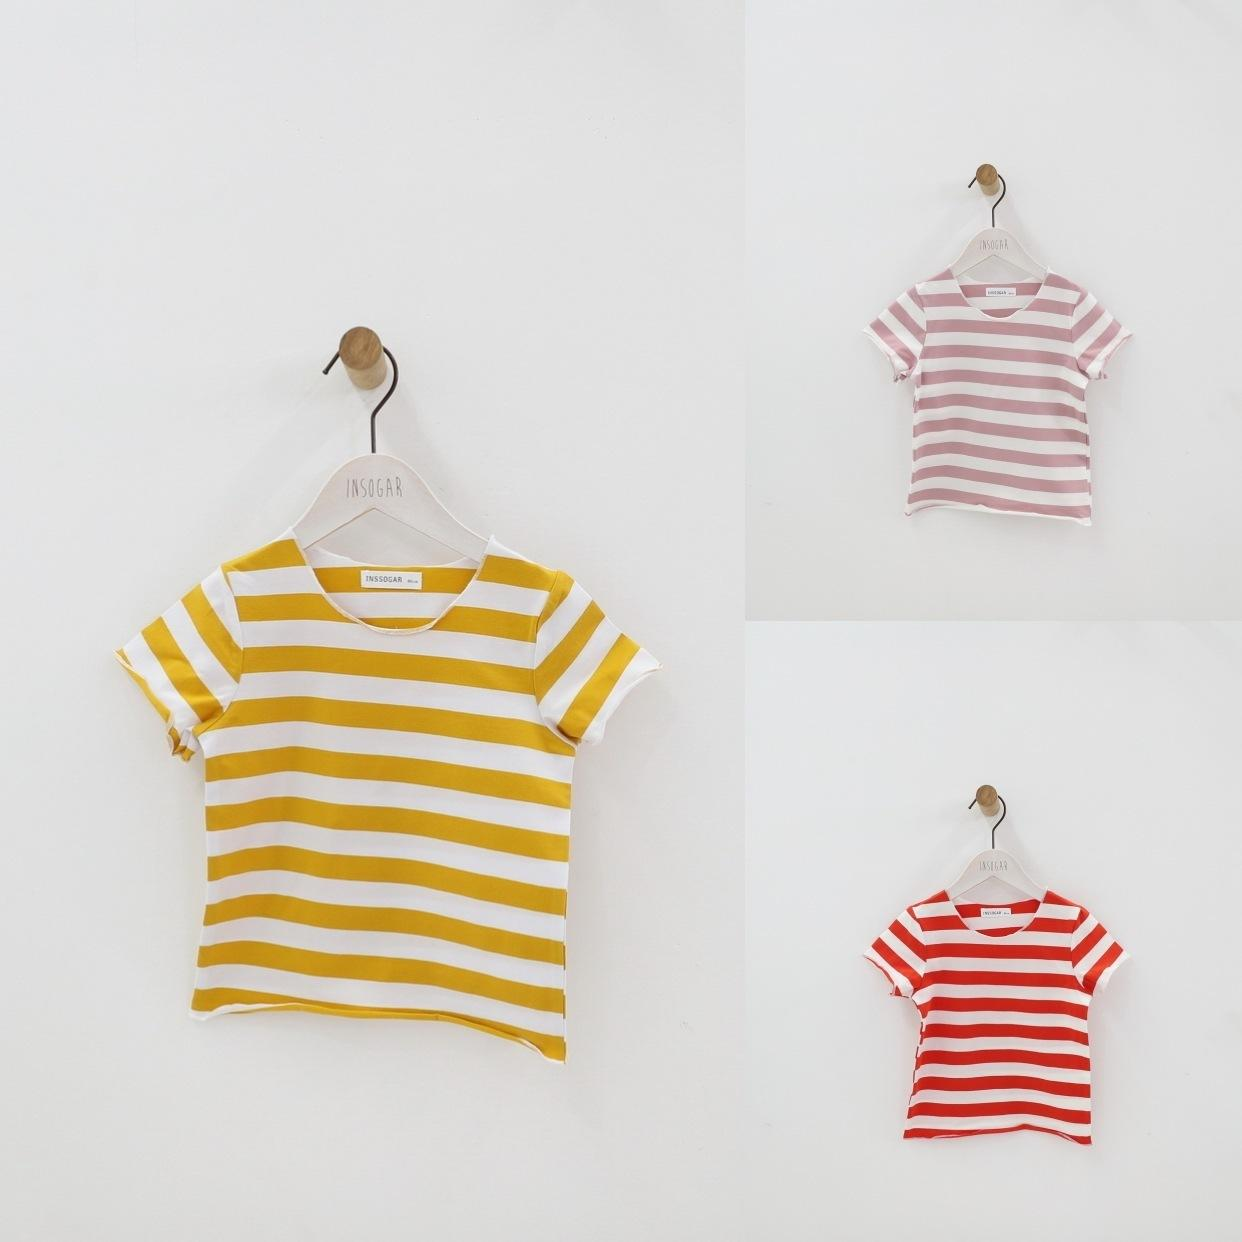 2019 Summer Children T Shirt Casual Simple Baby Girls Boys Soft Cotton Tops  Kid Toddler Short Sleeve Striped T Shirts Kids Clothing From Usefully18 826431288cb